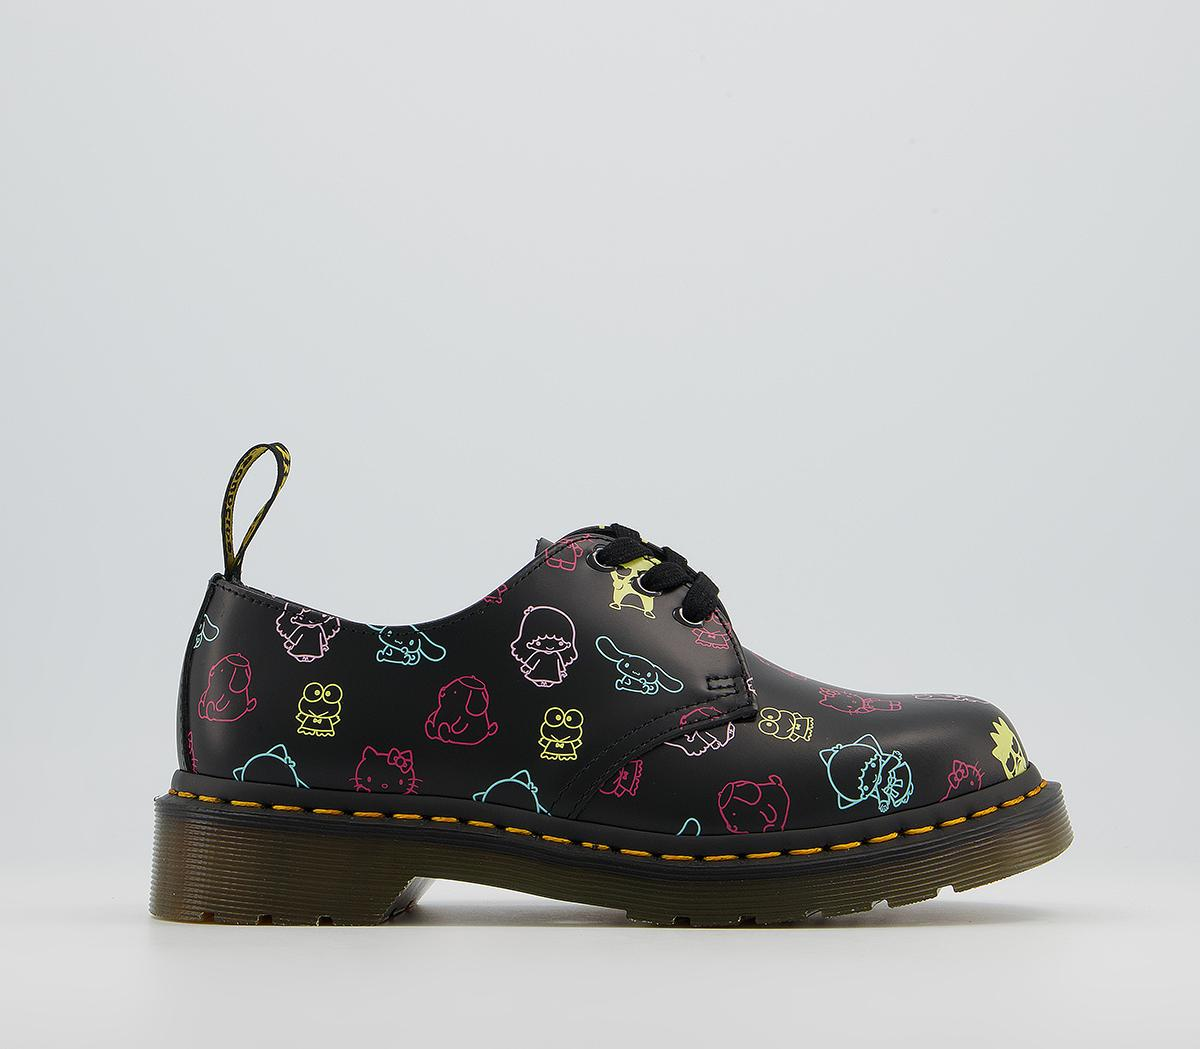 1461 Hello Kitty & Friends Shoes